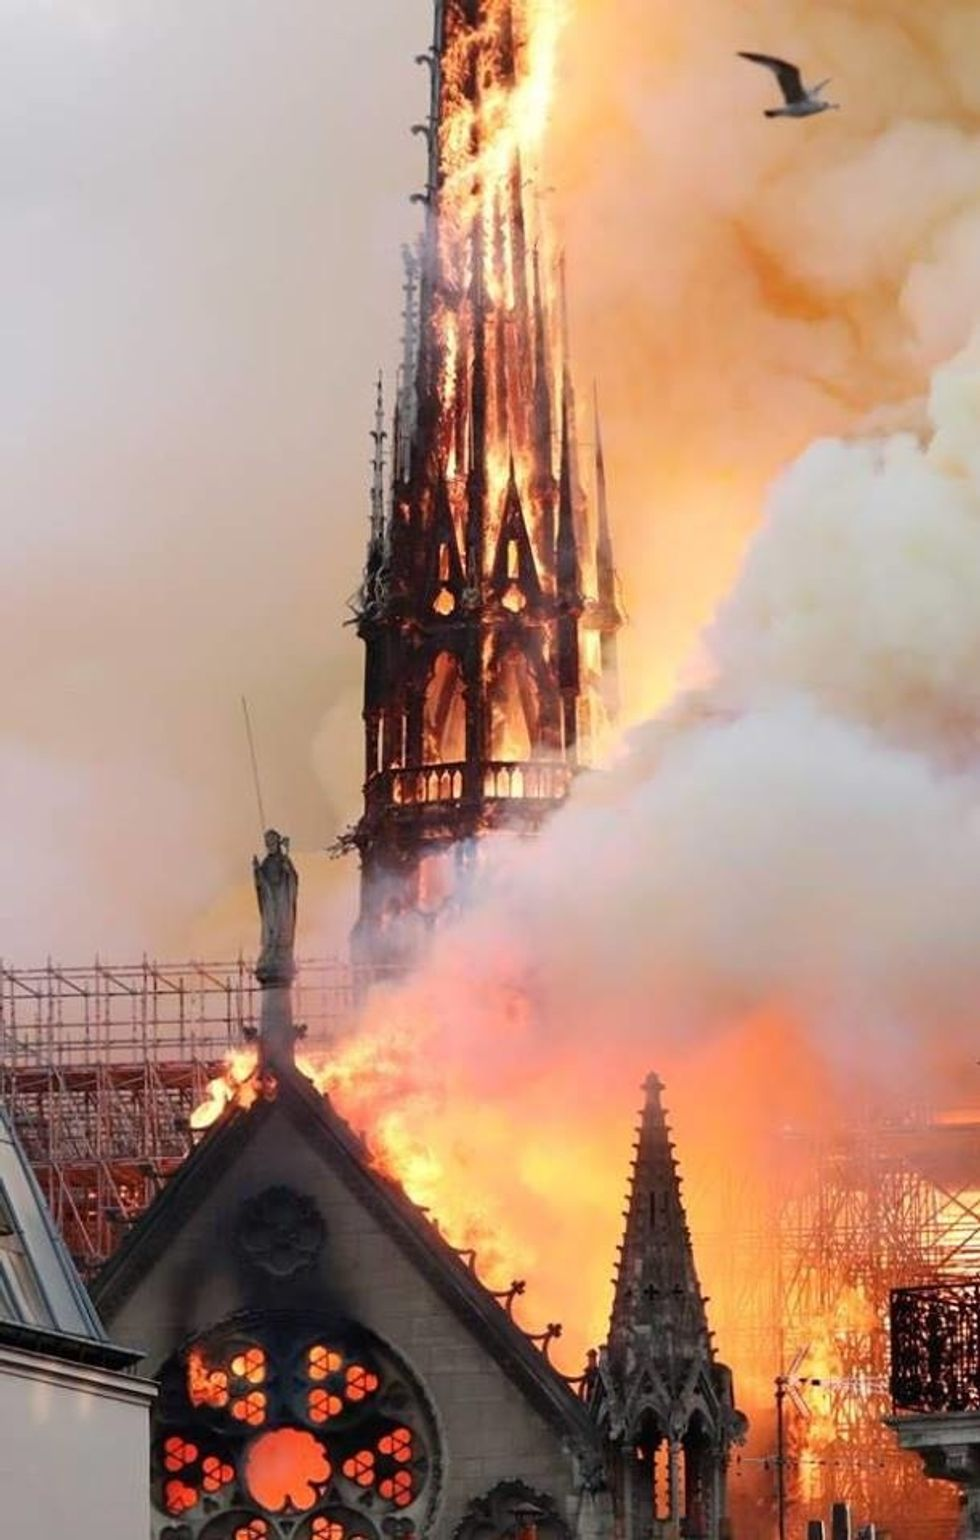 Notre Dame Cathedral Does Not Need Donations, The Catholic Church Can Afford It